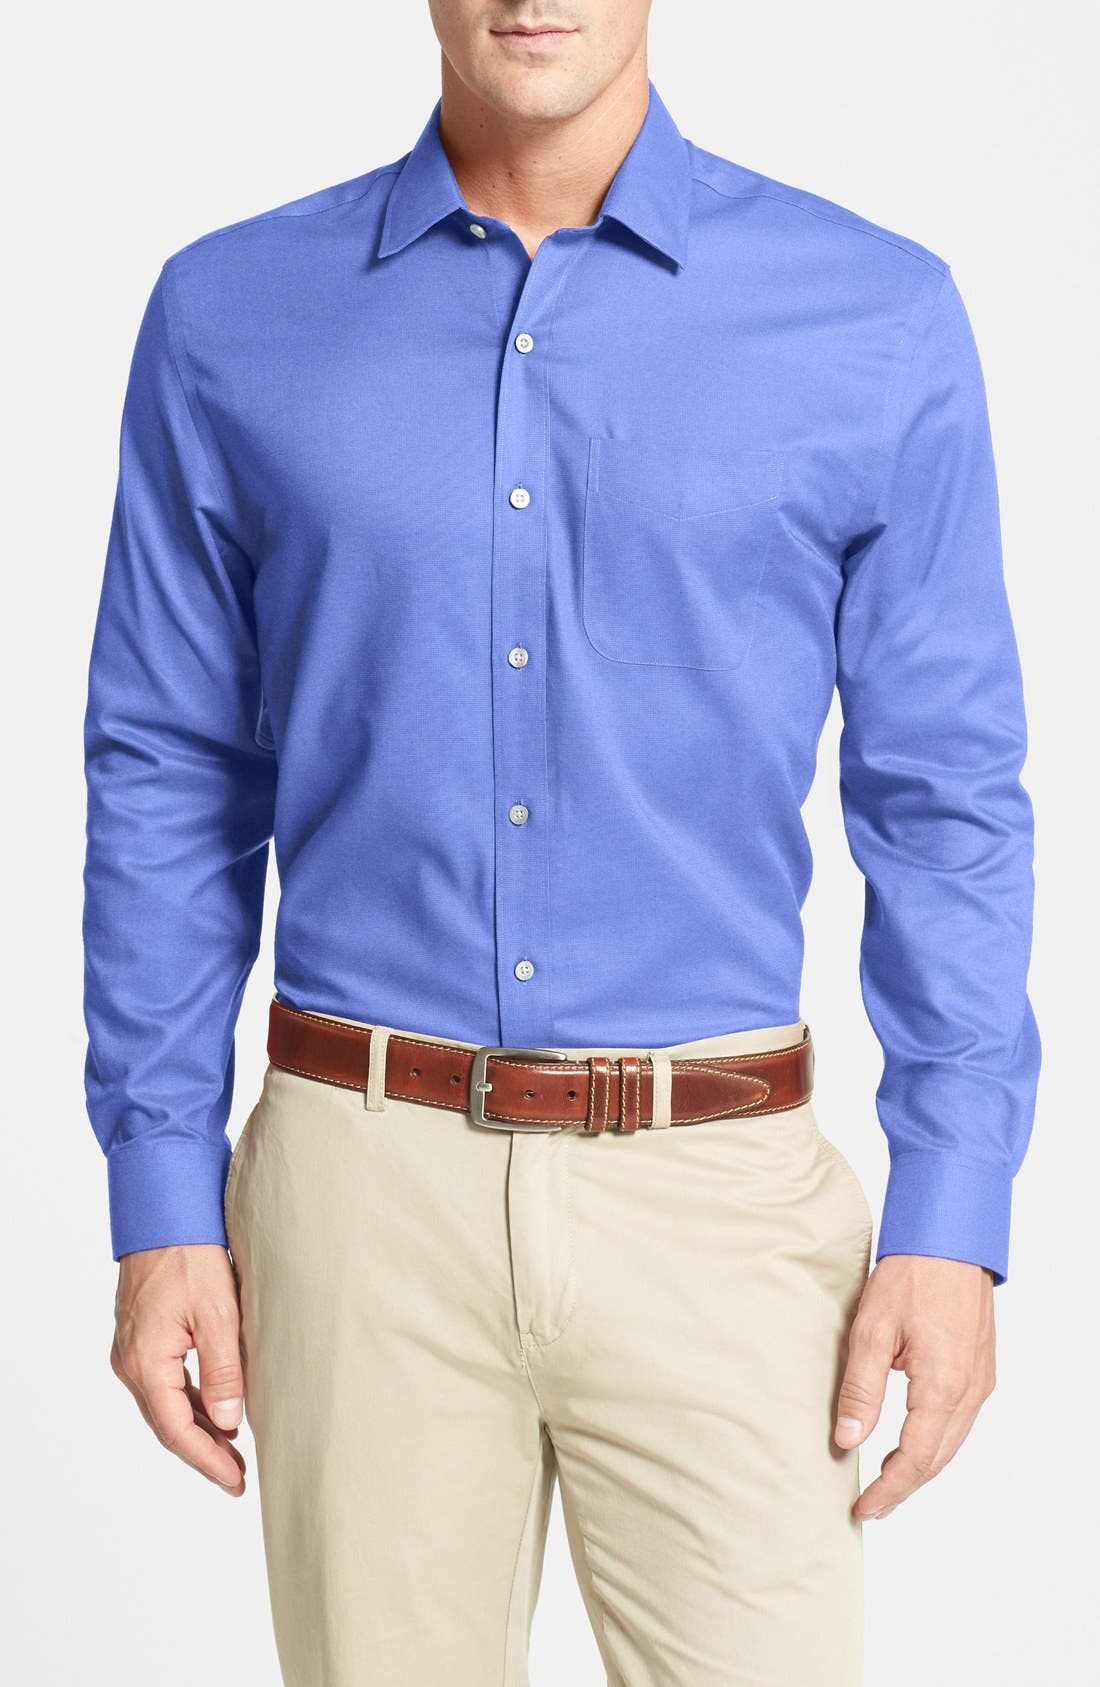 Alternate Image 1 Selected - Cutter & Buck Epic Easy Care Classic Fit Wrinkle Free Sport Shirt